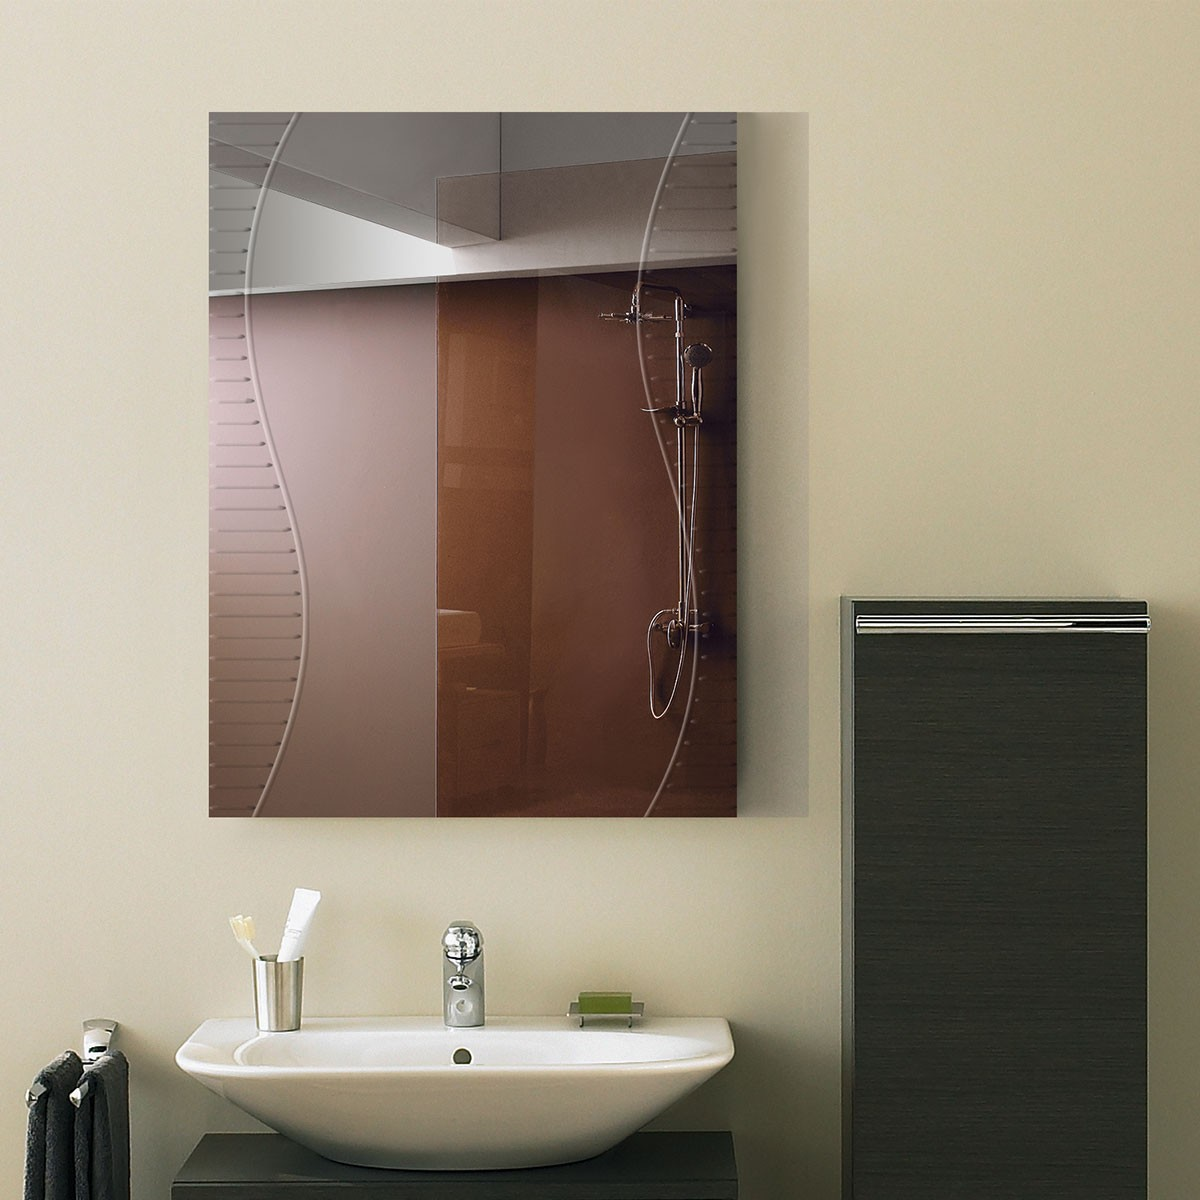 24 x 18 In. Wall-mounted Rectangle Bathroom Mirror (DK-OD-B068C)